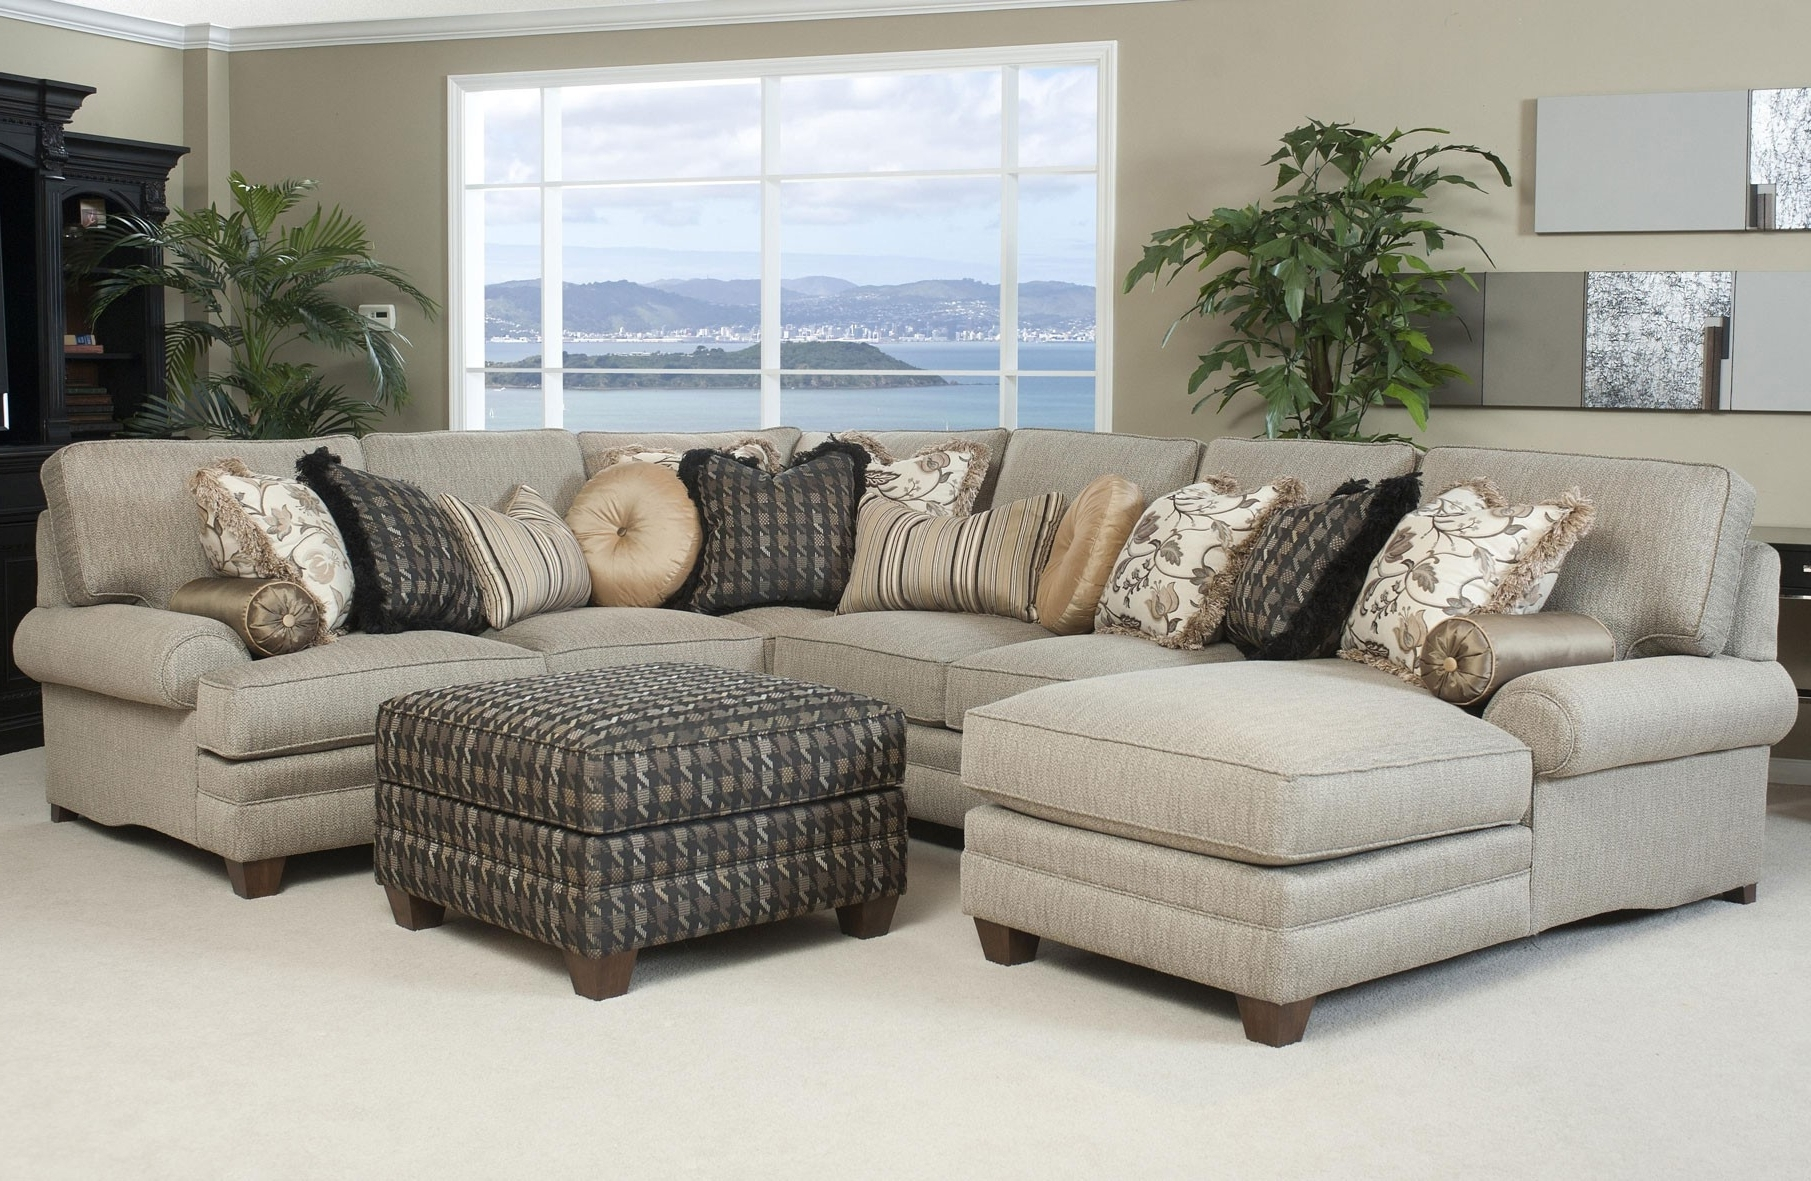 Newest Cheap Sectional Sofas In Roanoke Va (View 8 of 15)